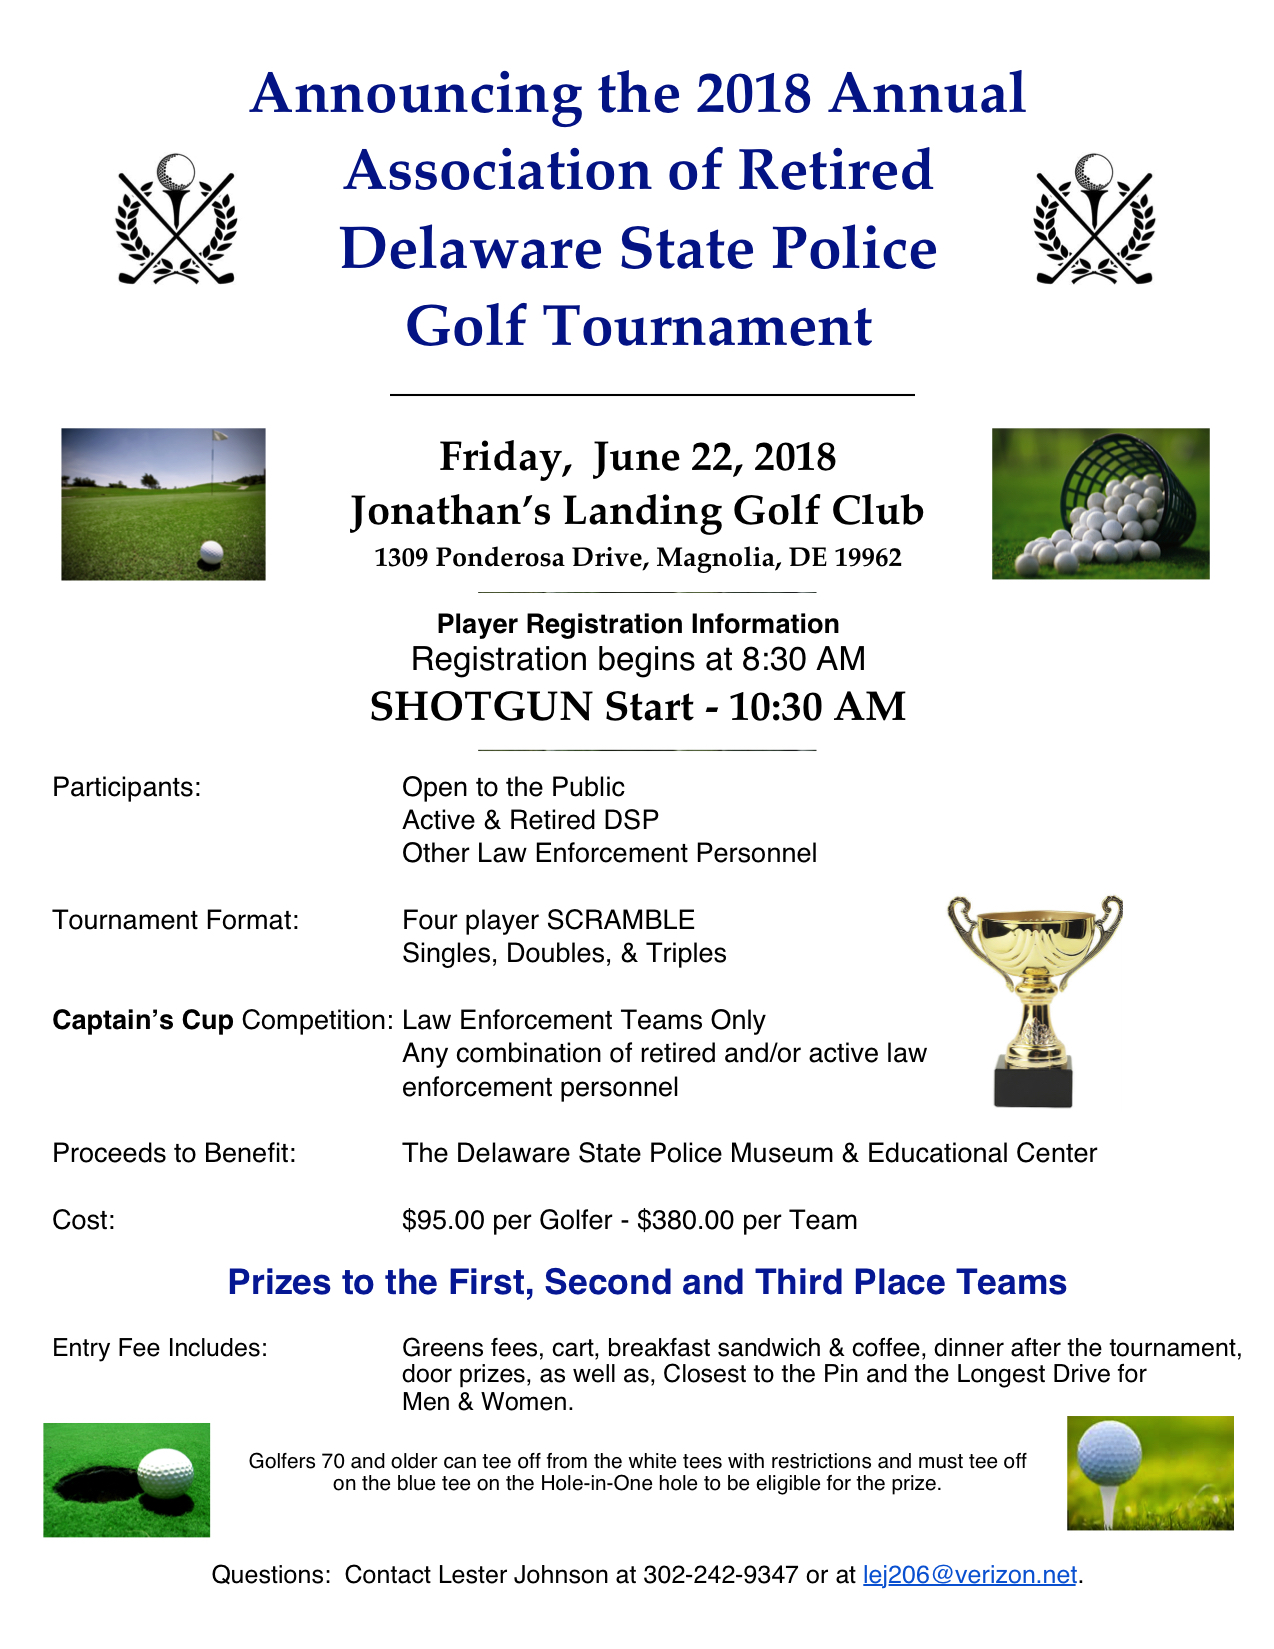 Delaware State Police Golf Tournament